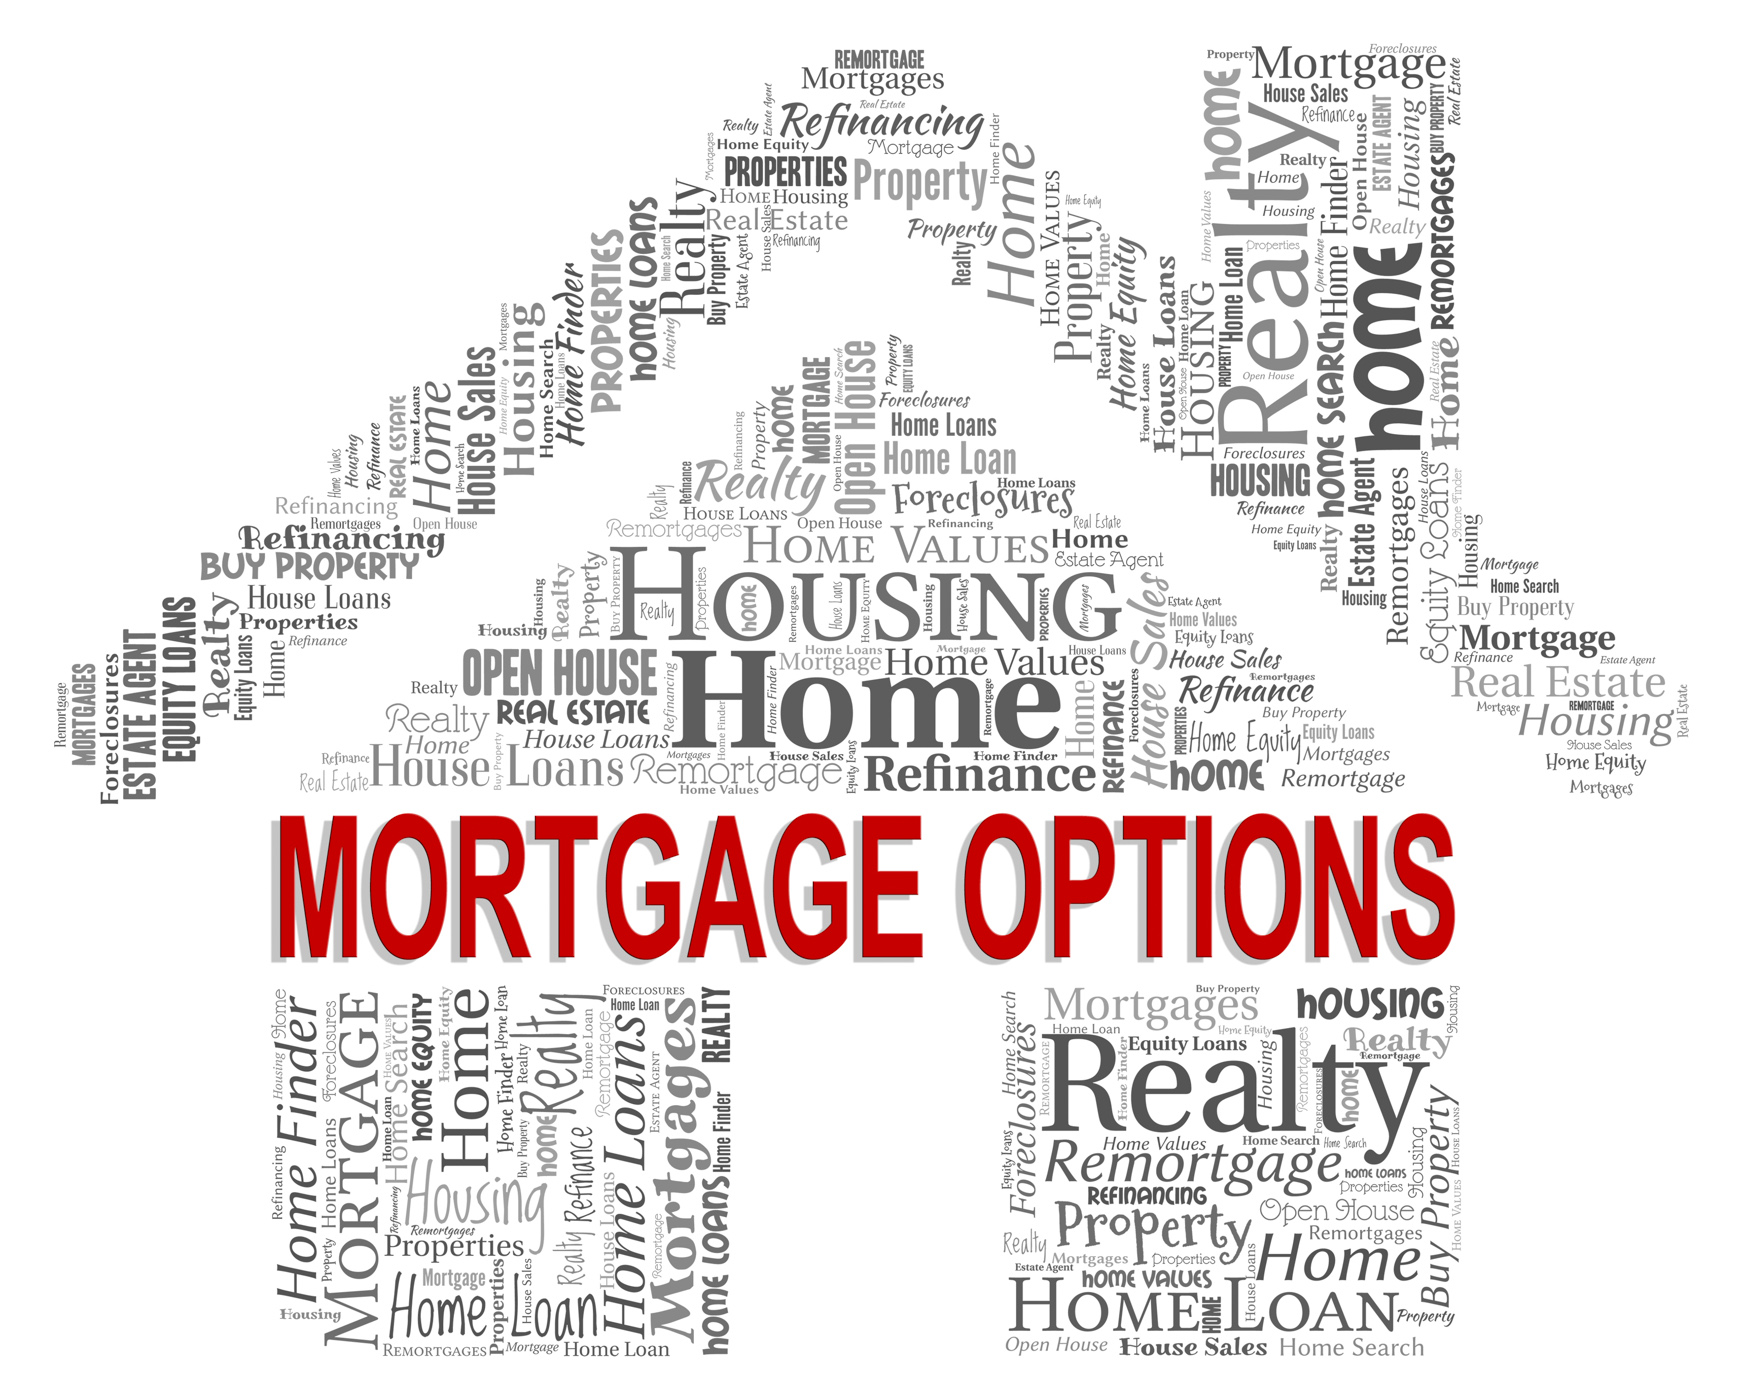 Mortgage options shows real estate and alternative photo